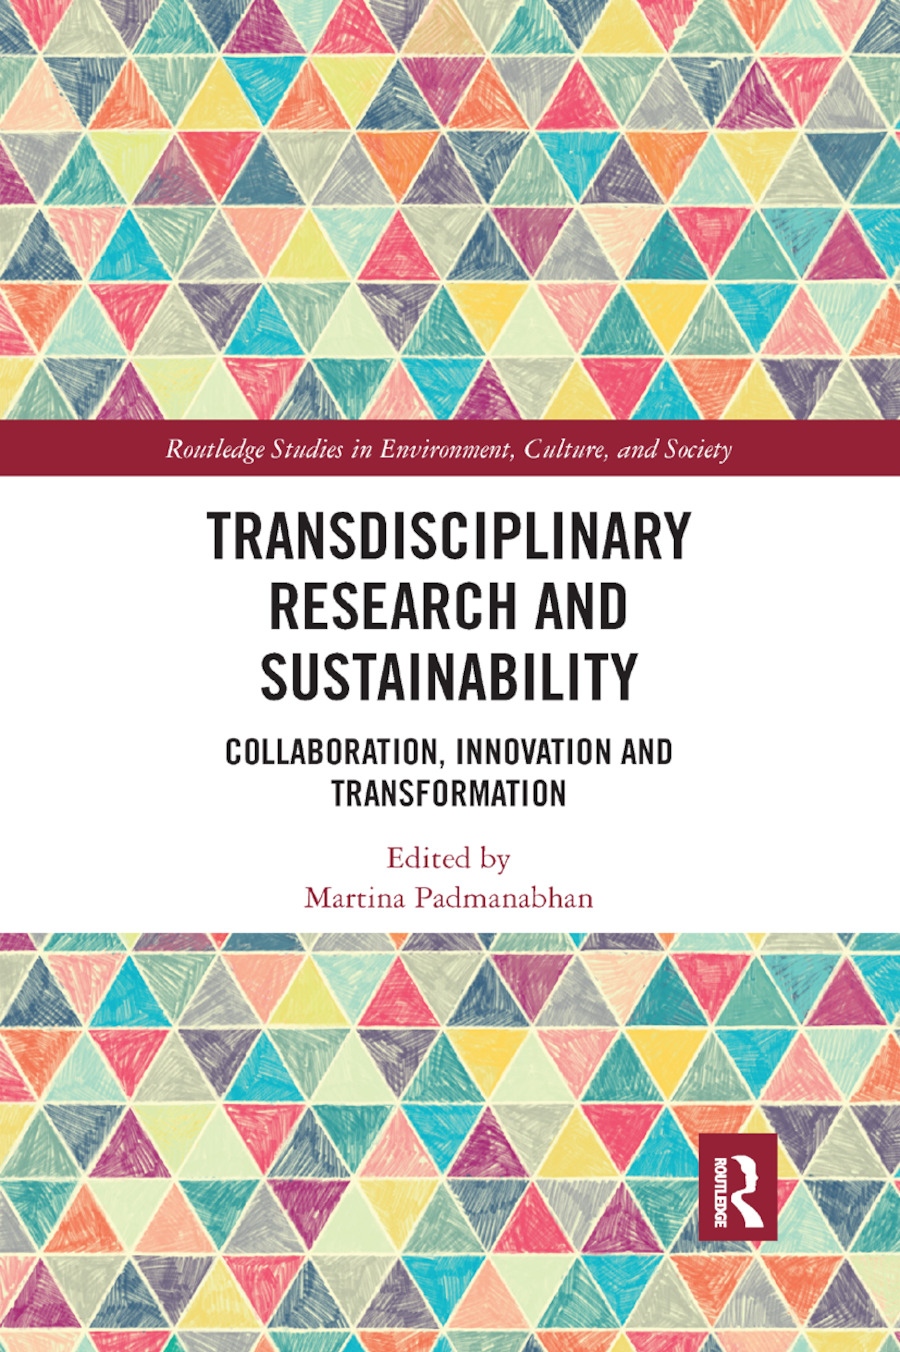 Transdisciplinary Research and Sustainability: Collaboration, Innovation and Transformation book cover